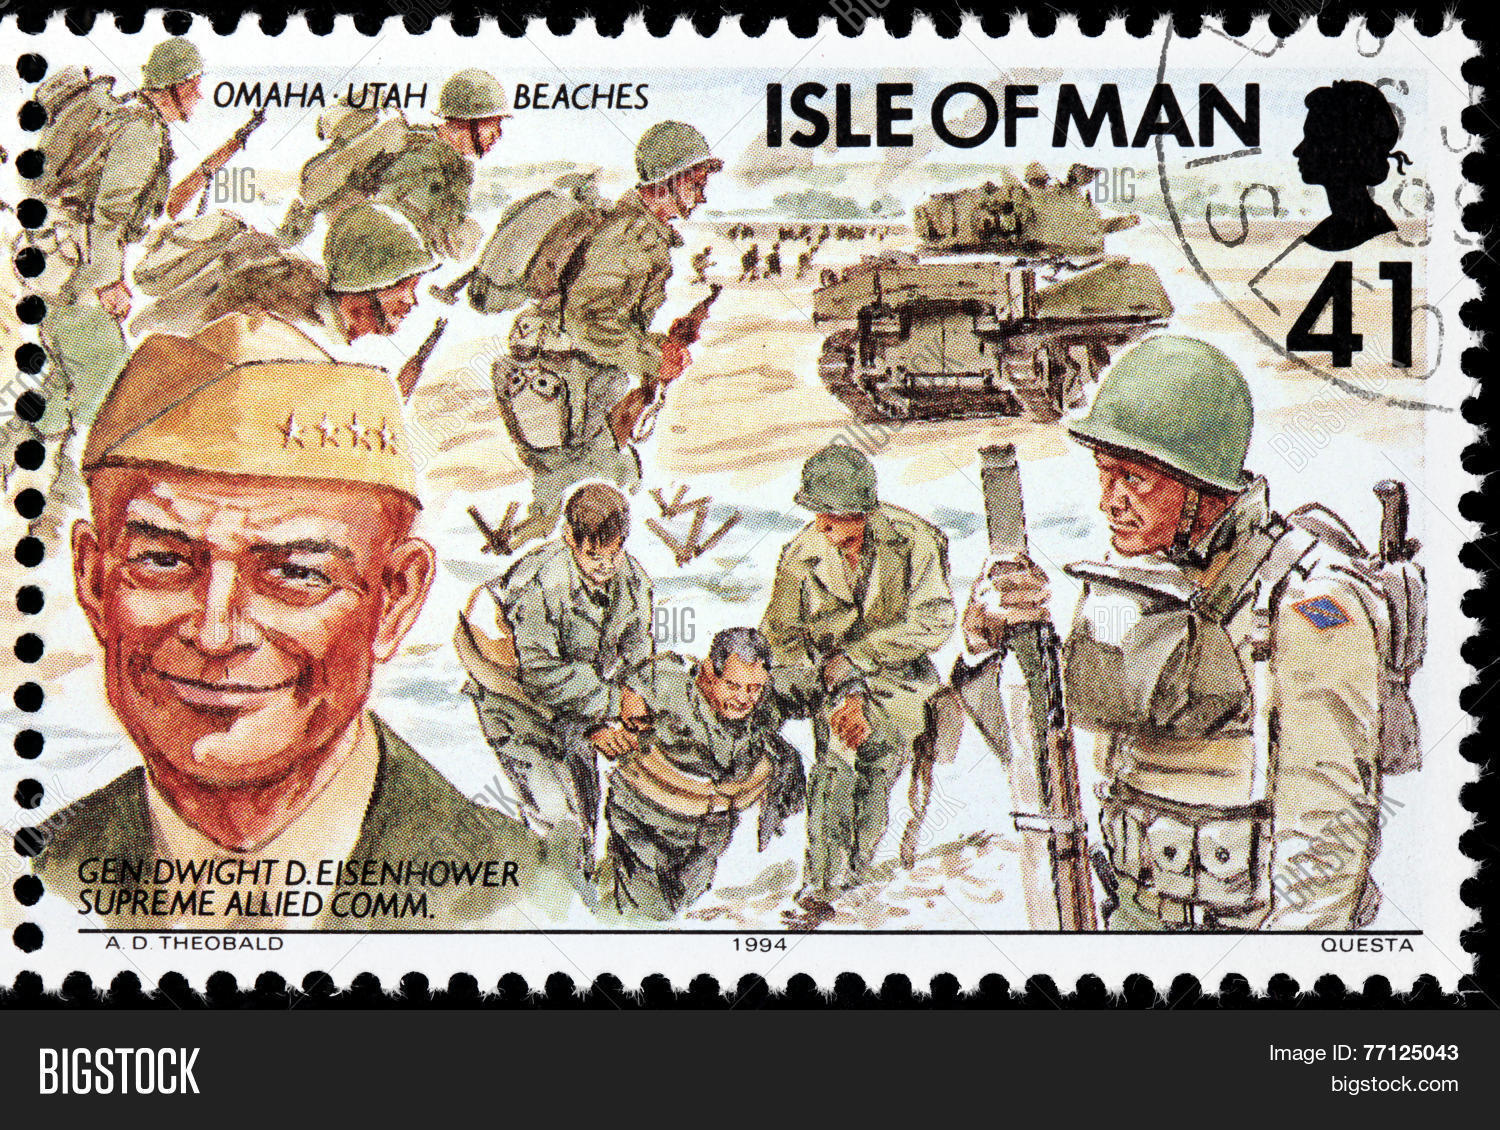 Eisenhower Stamp Image Photo Free Trial